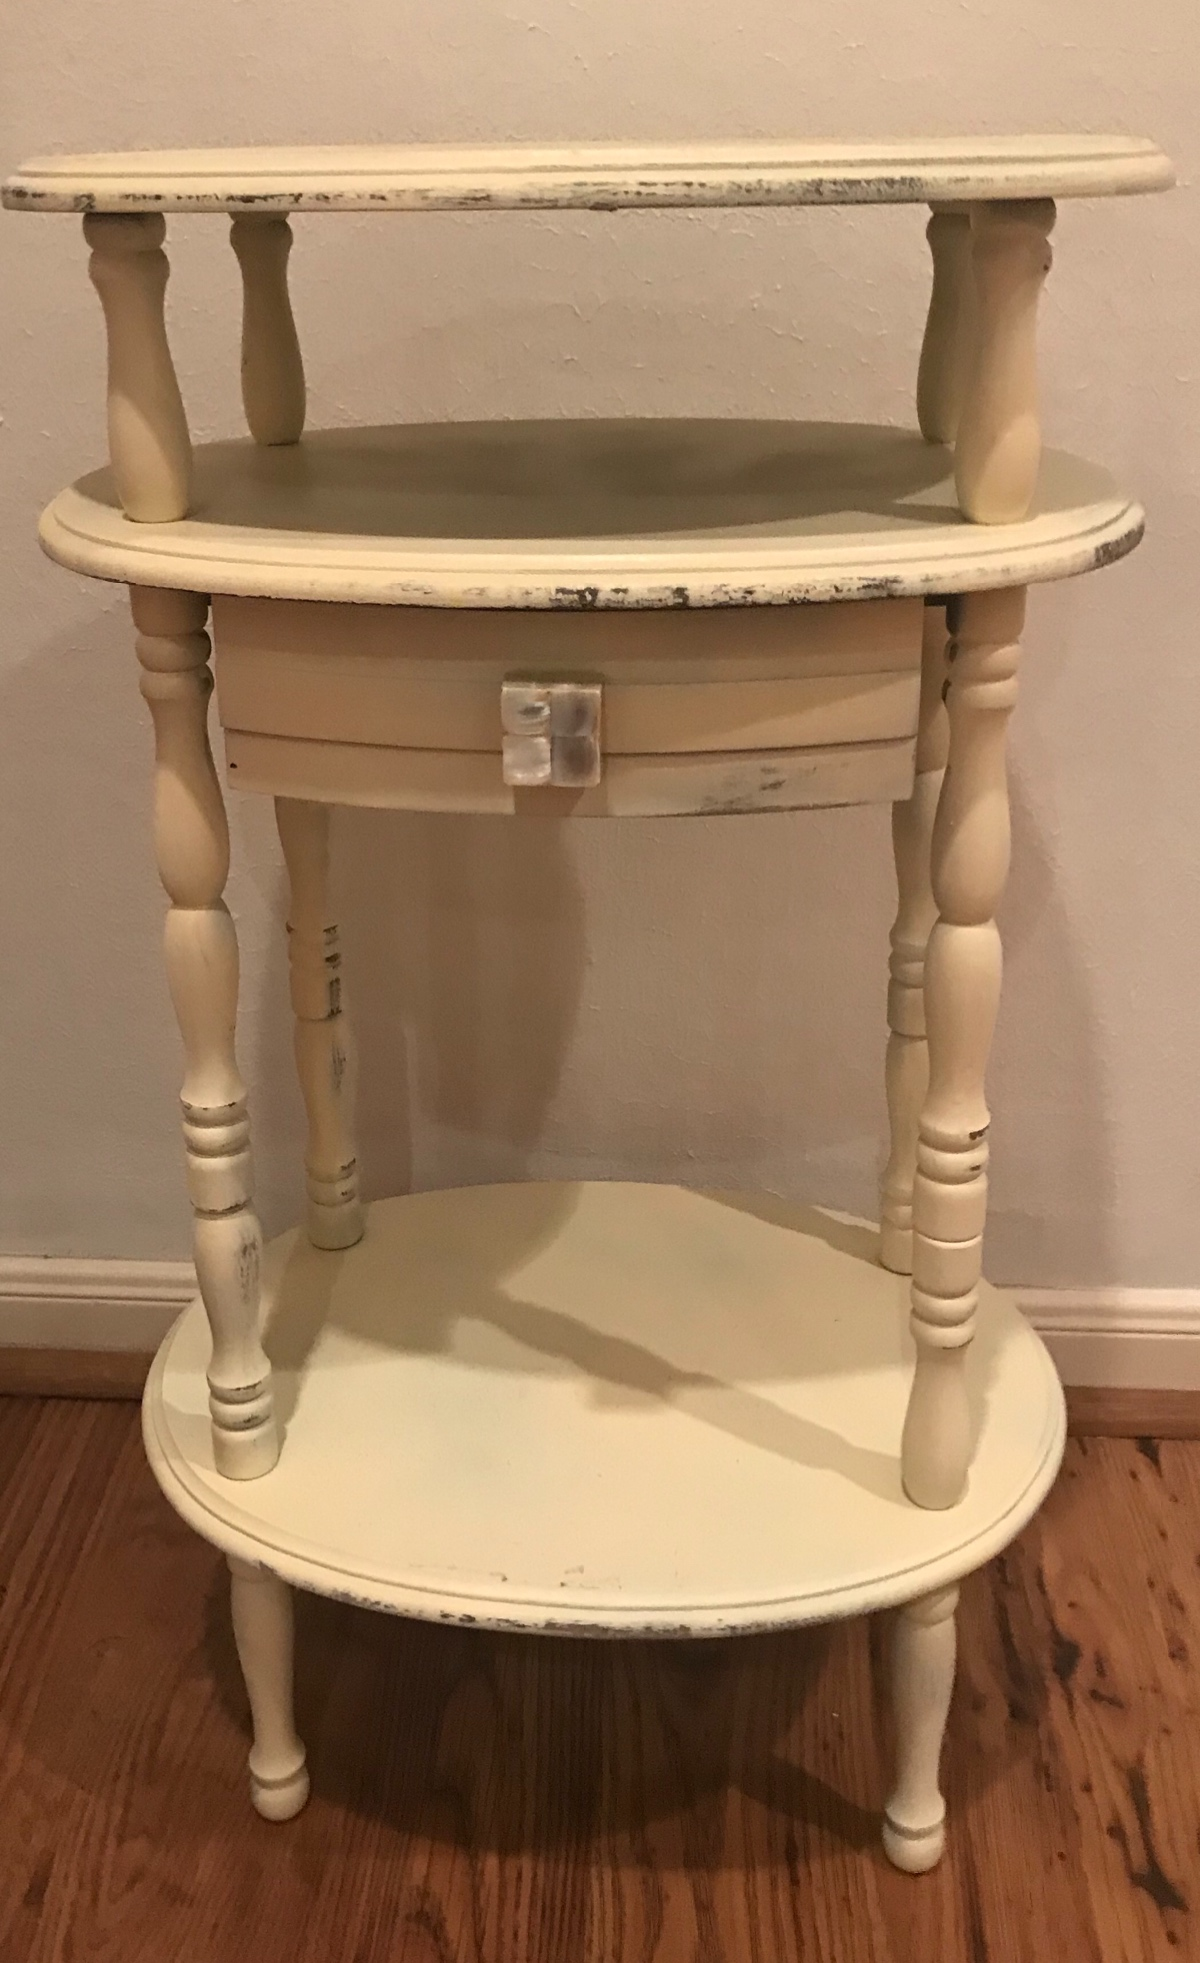 kingwood farmhouse style accent table send seller private email only the this item will able see your message subject mirrored rectangular coffee kitchen chairs black antique